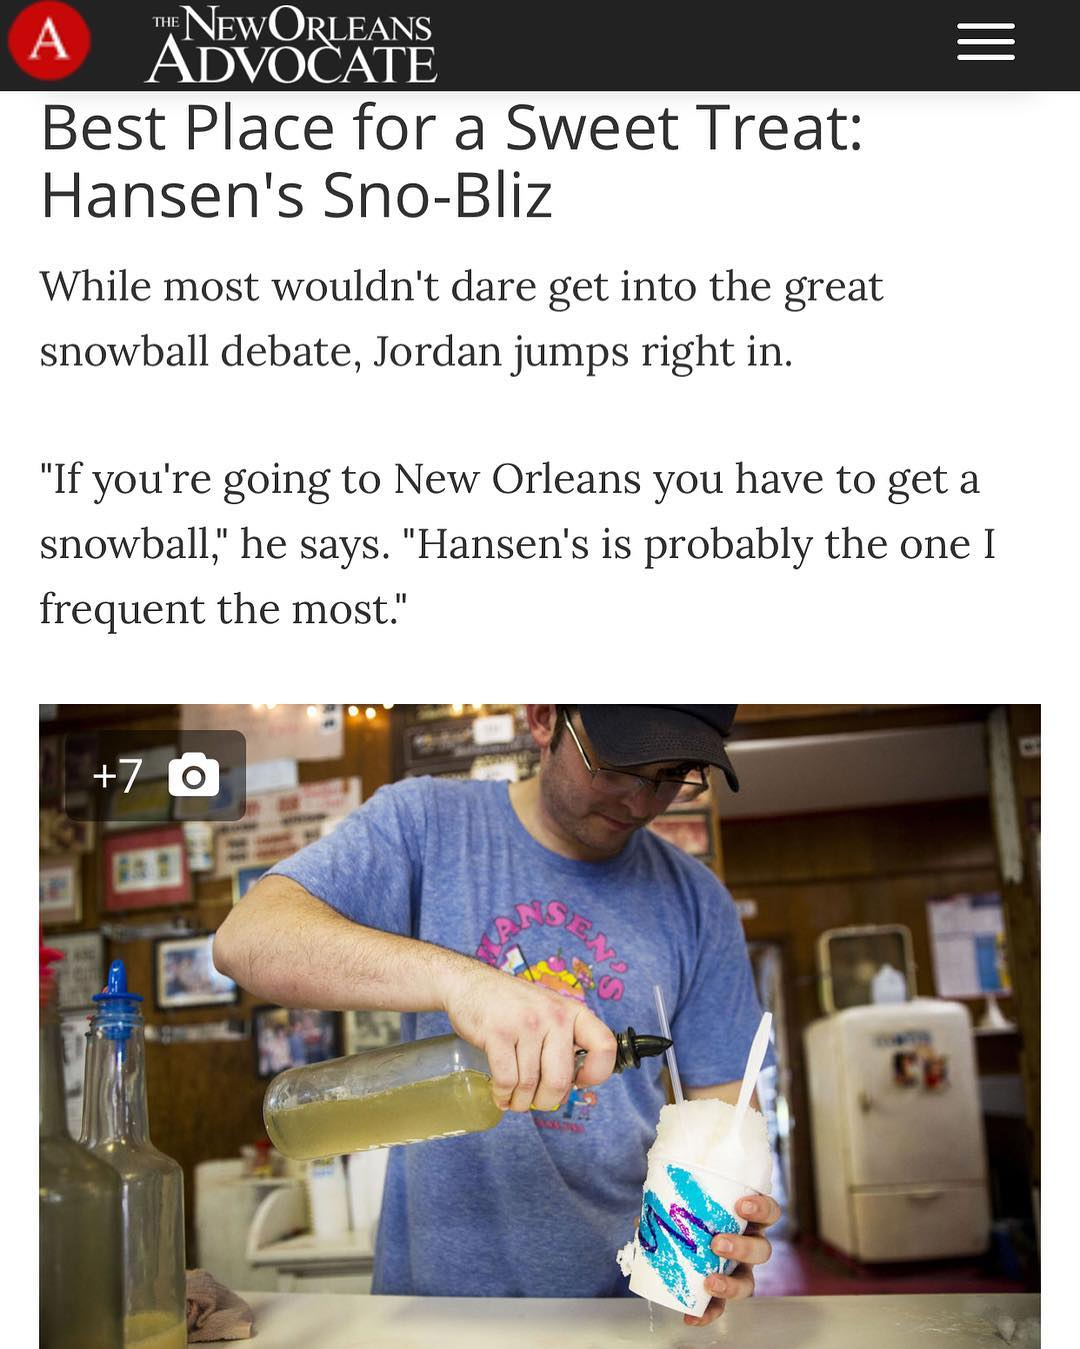 New Orleans @saints defensive end @camjordan94 names Hansen's @snobliz his favorite snoball stand! We love when our boys in Black & Gold visit us at the stand! Check the link in the bio for the full story! He also gave a nice shout out to our friends at @kinfordindin, who we can't praise enough!